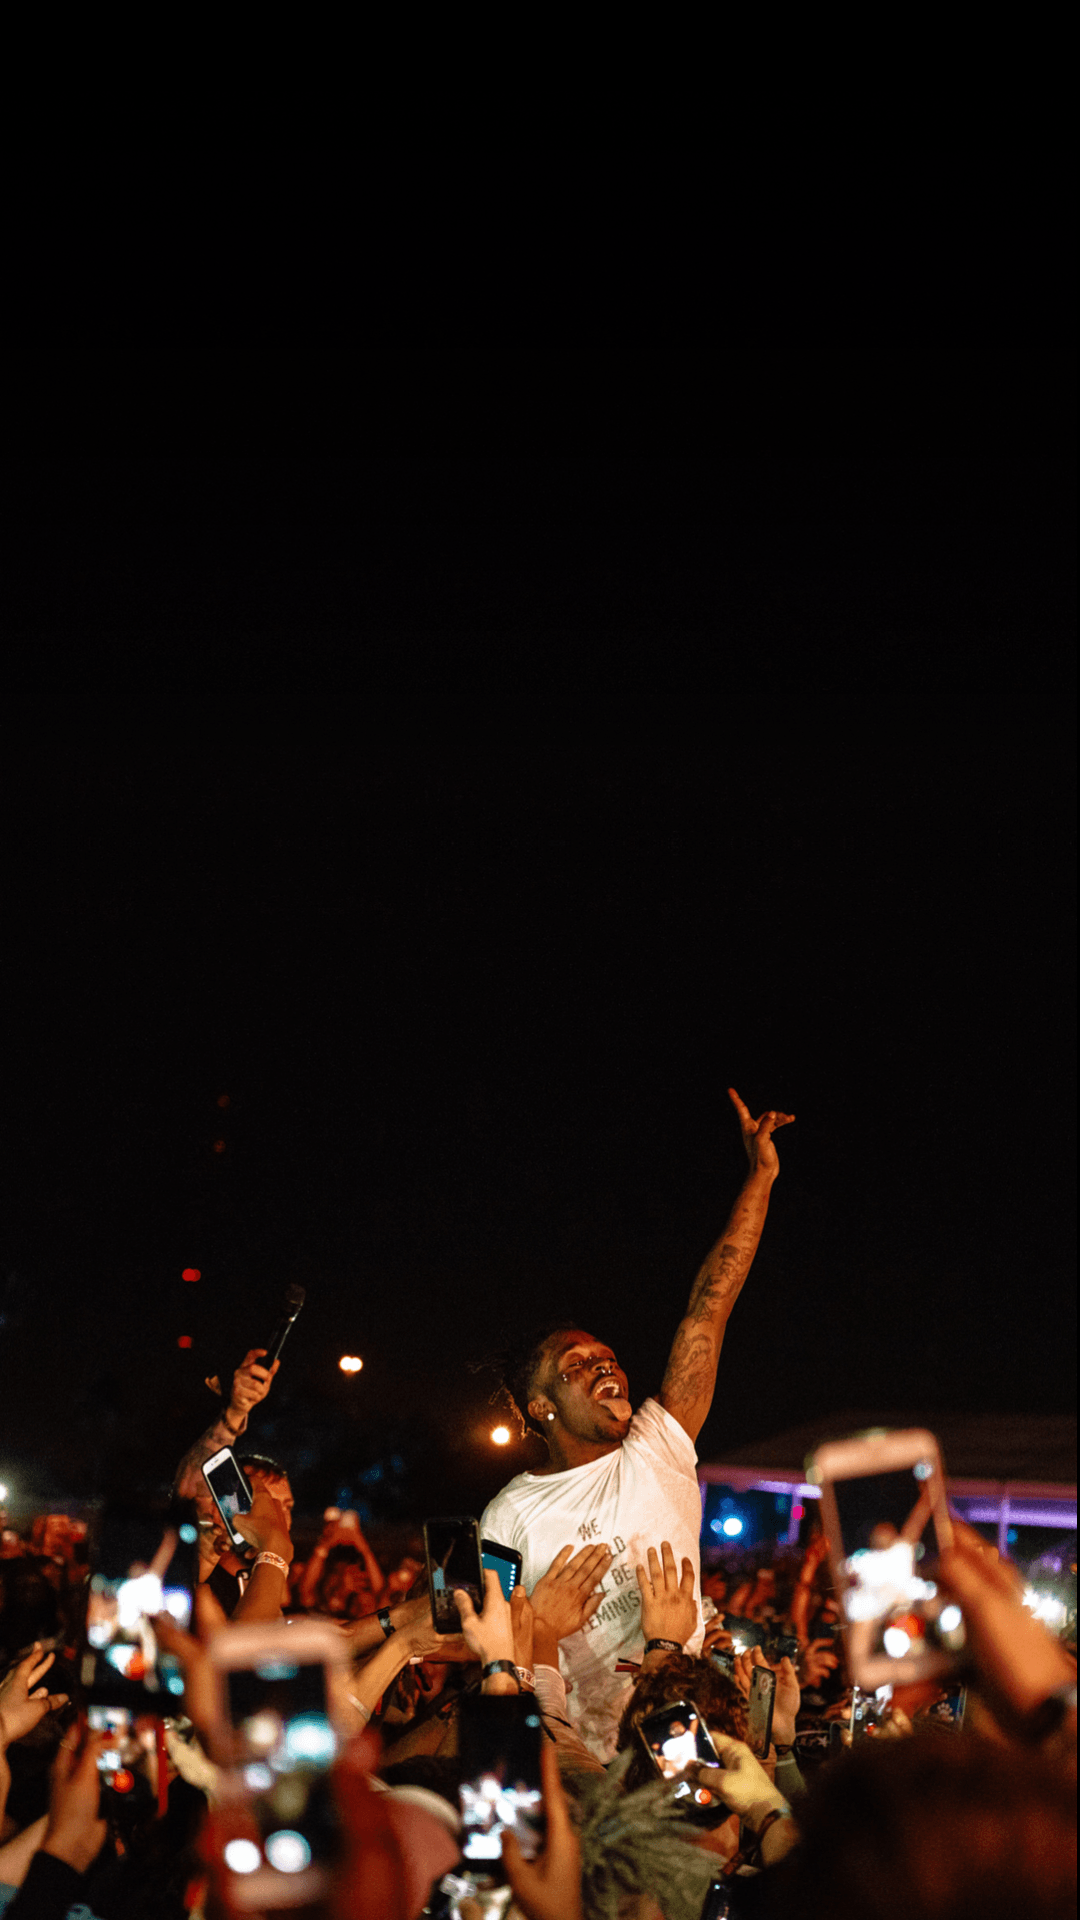 Lil Uzi Phone Wallpapers Top Free Lil Uzi Phone Backgrounds Wallpaperaccess This can be seen through the newest tracks which he has been teasing. lil uzi phone wallpapers top free lil